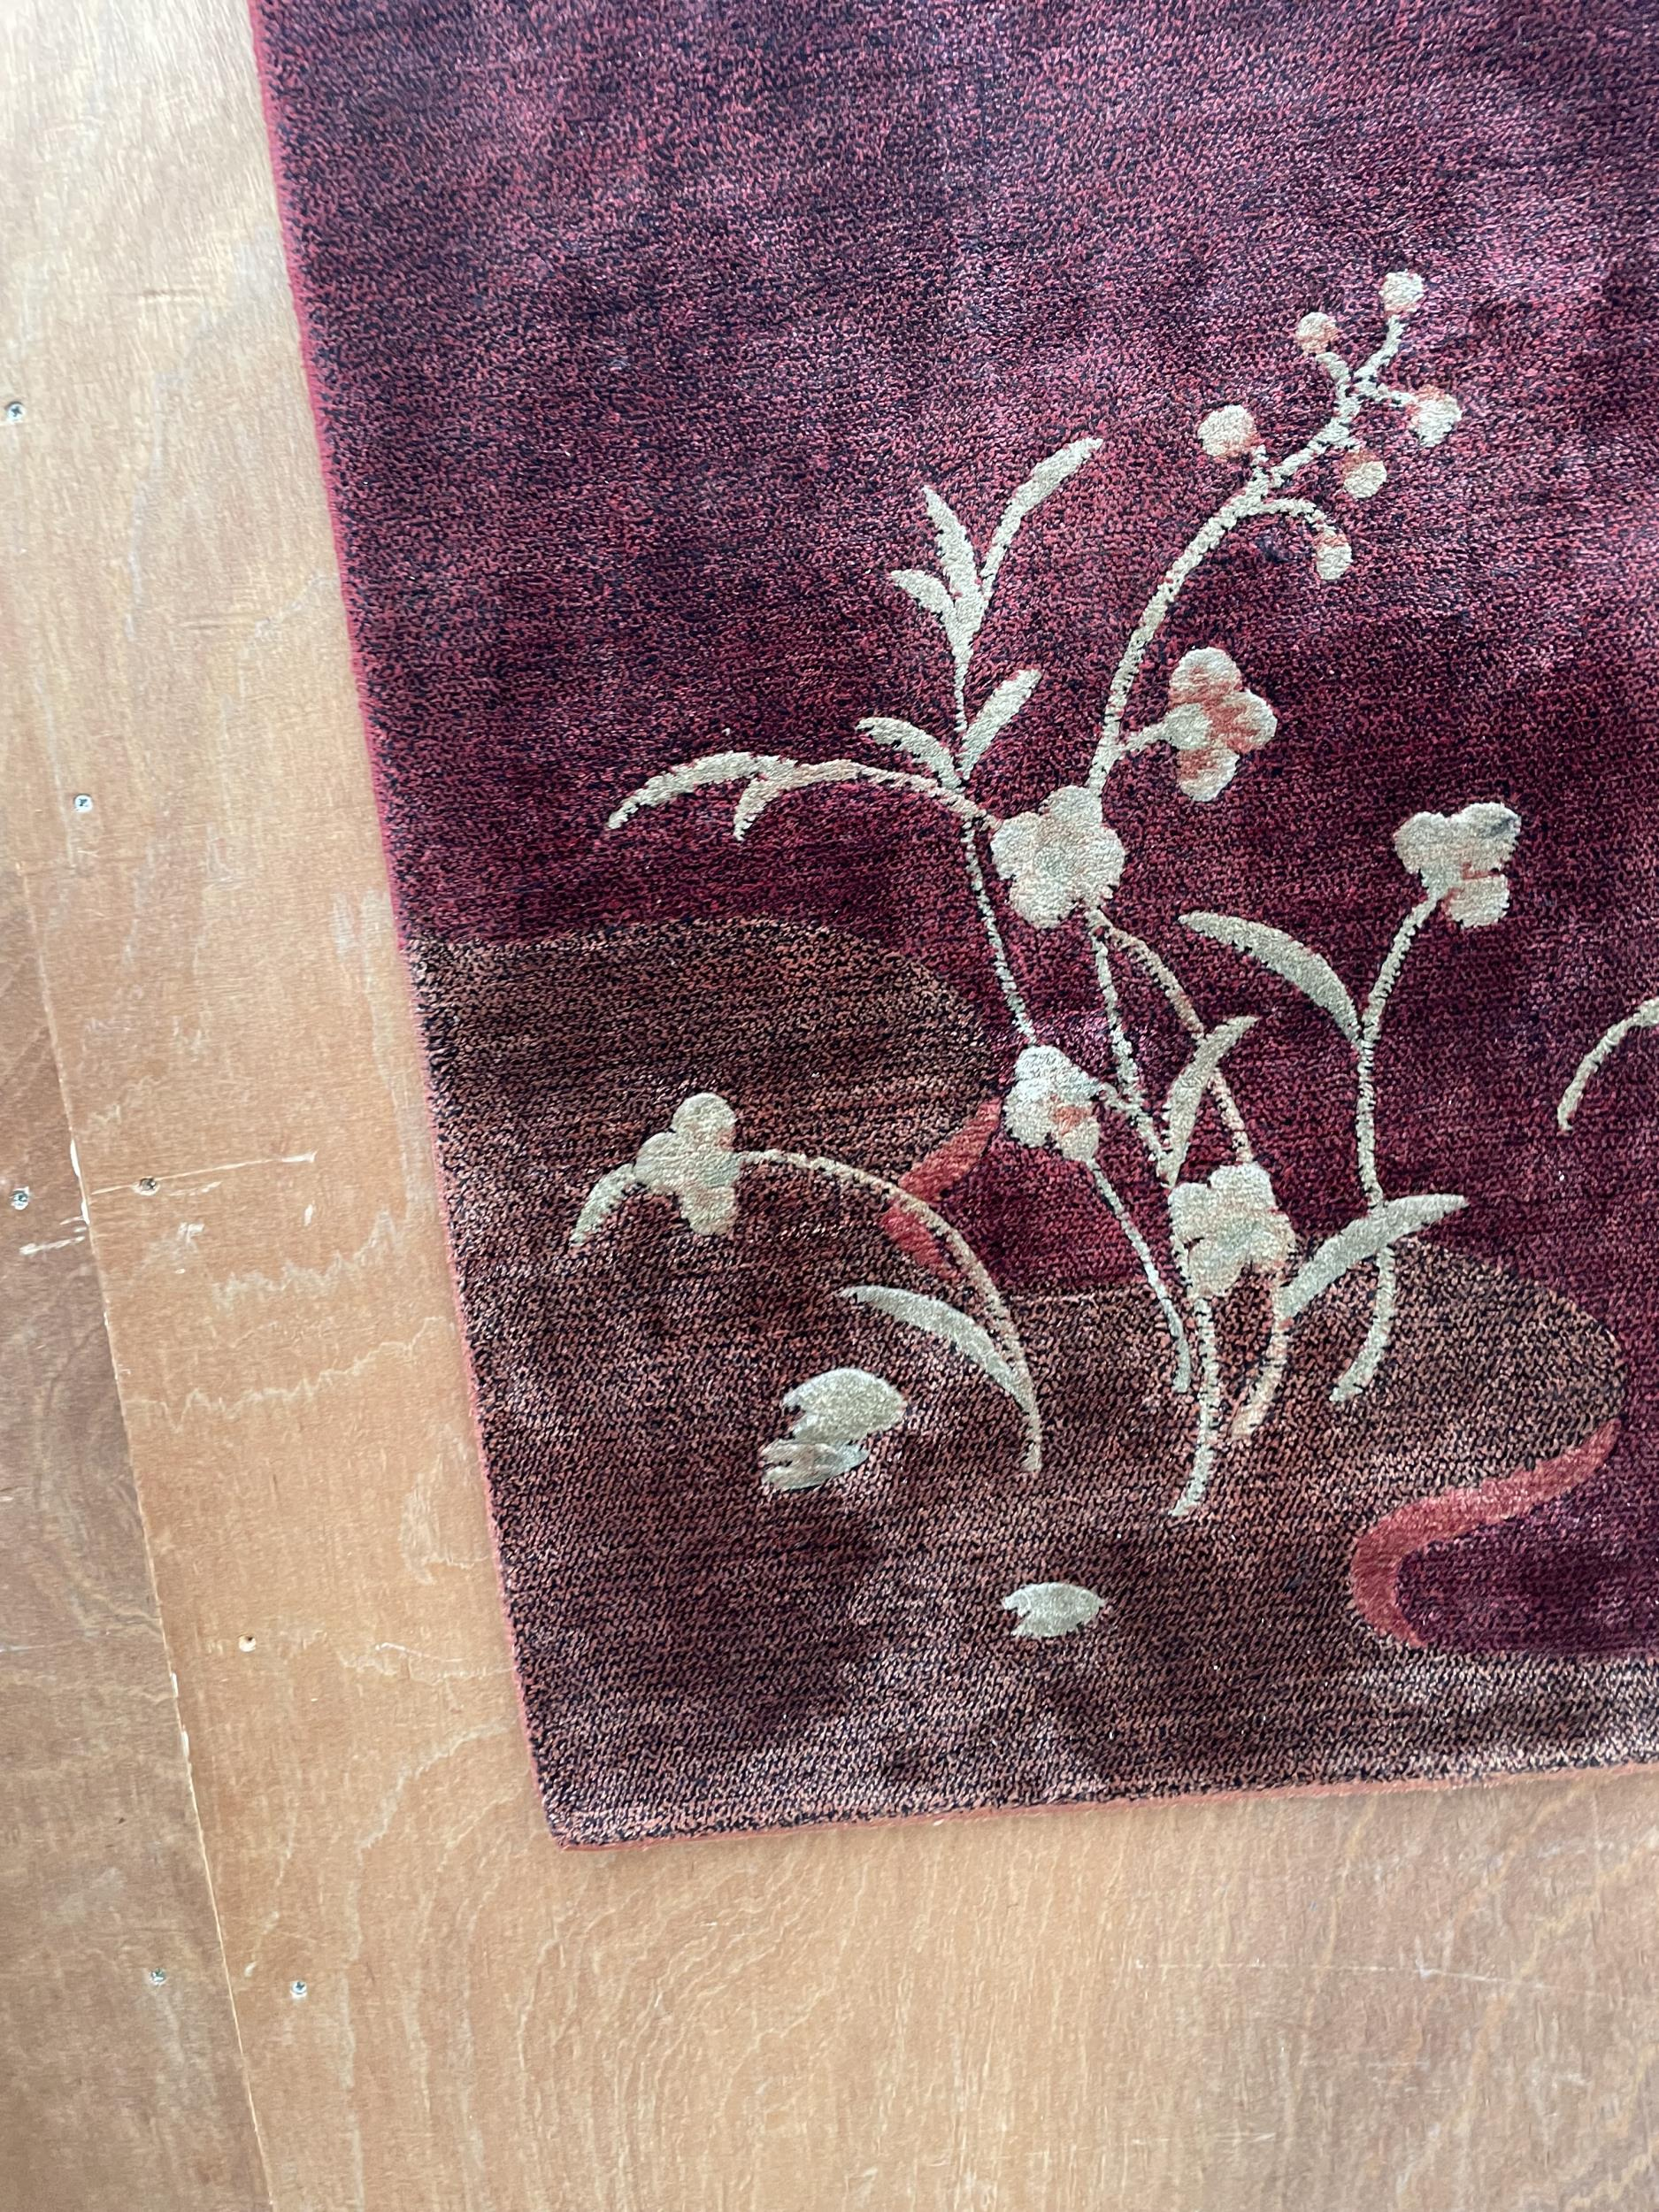 A LARGE MODERN RED PATTERNED RUG - Image 2 of 3